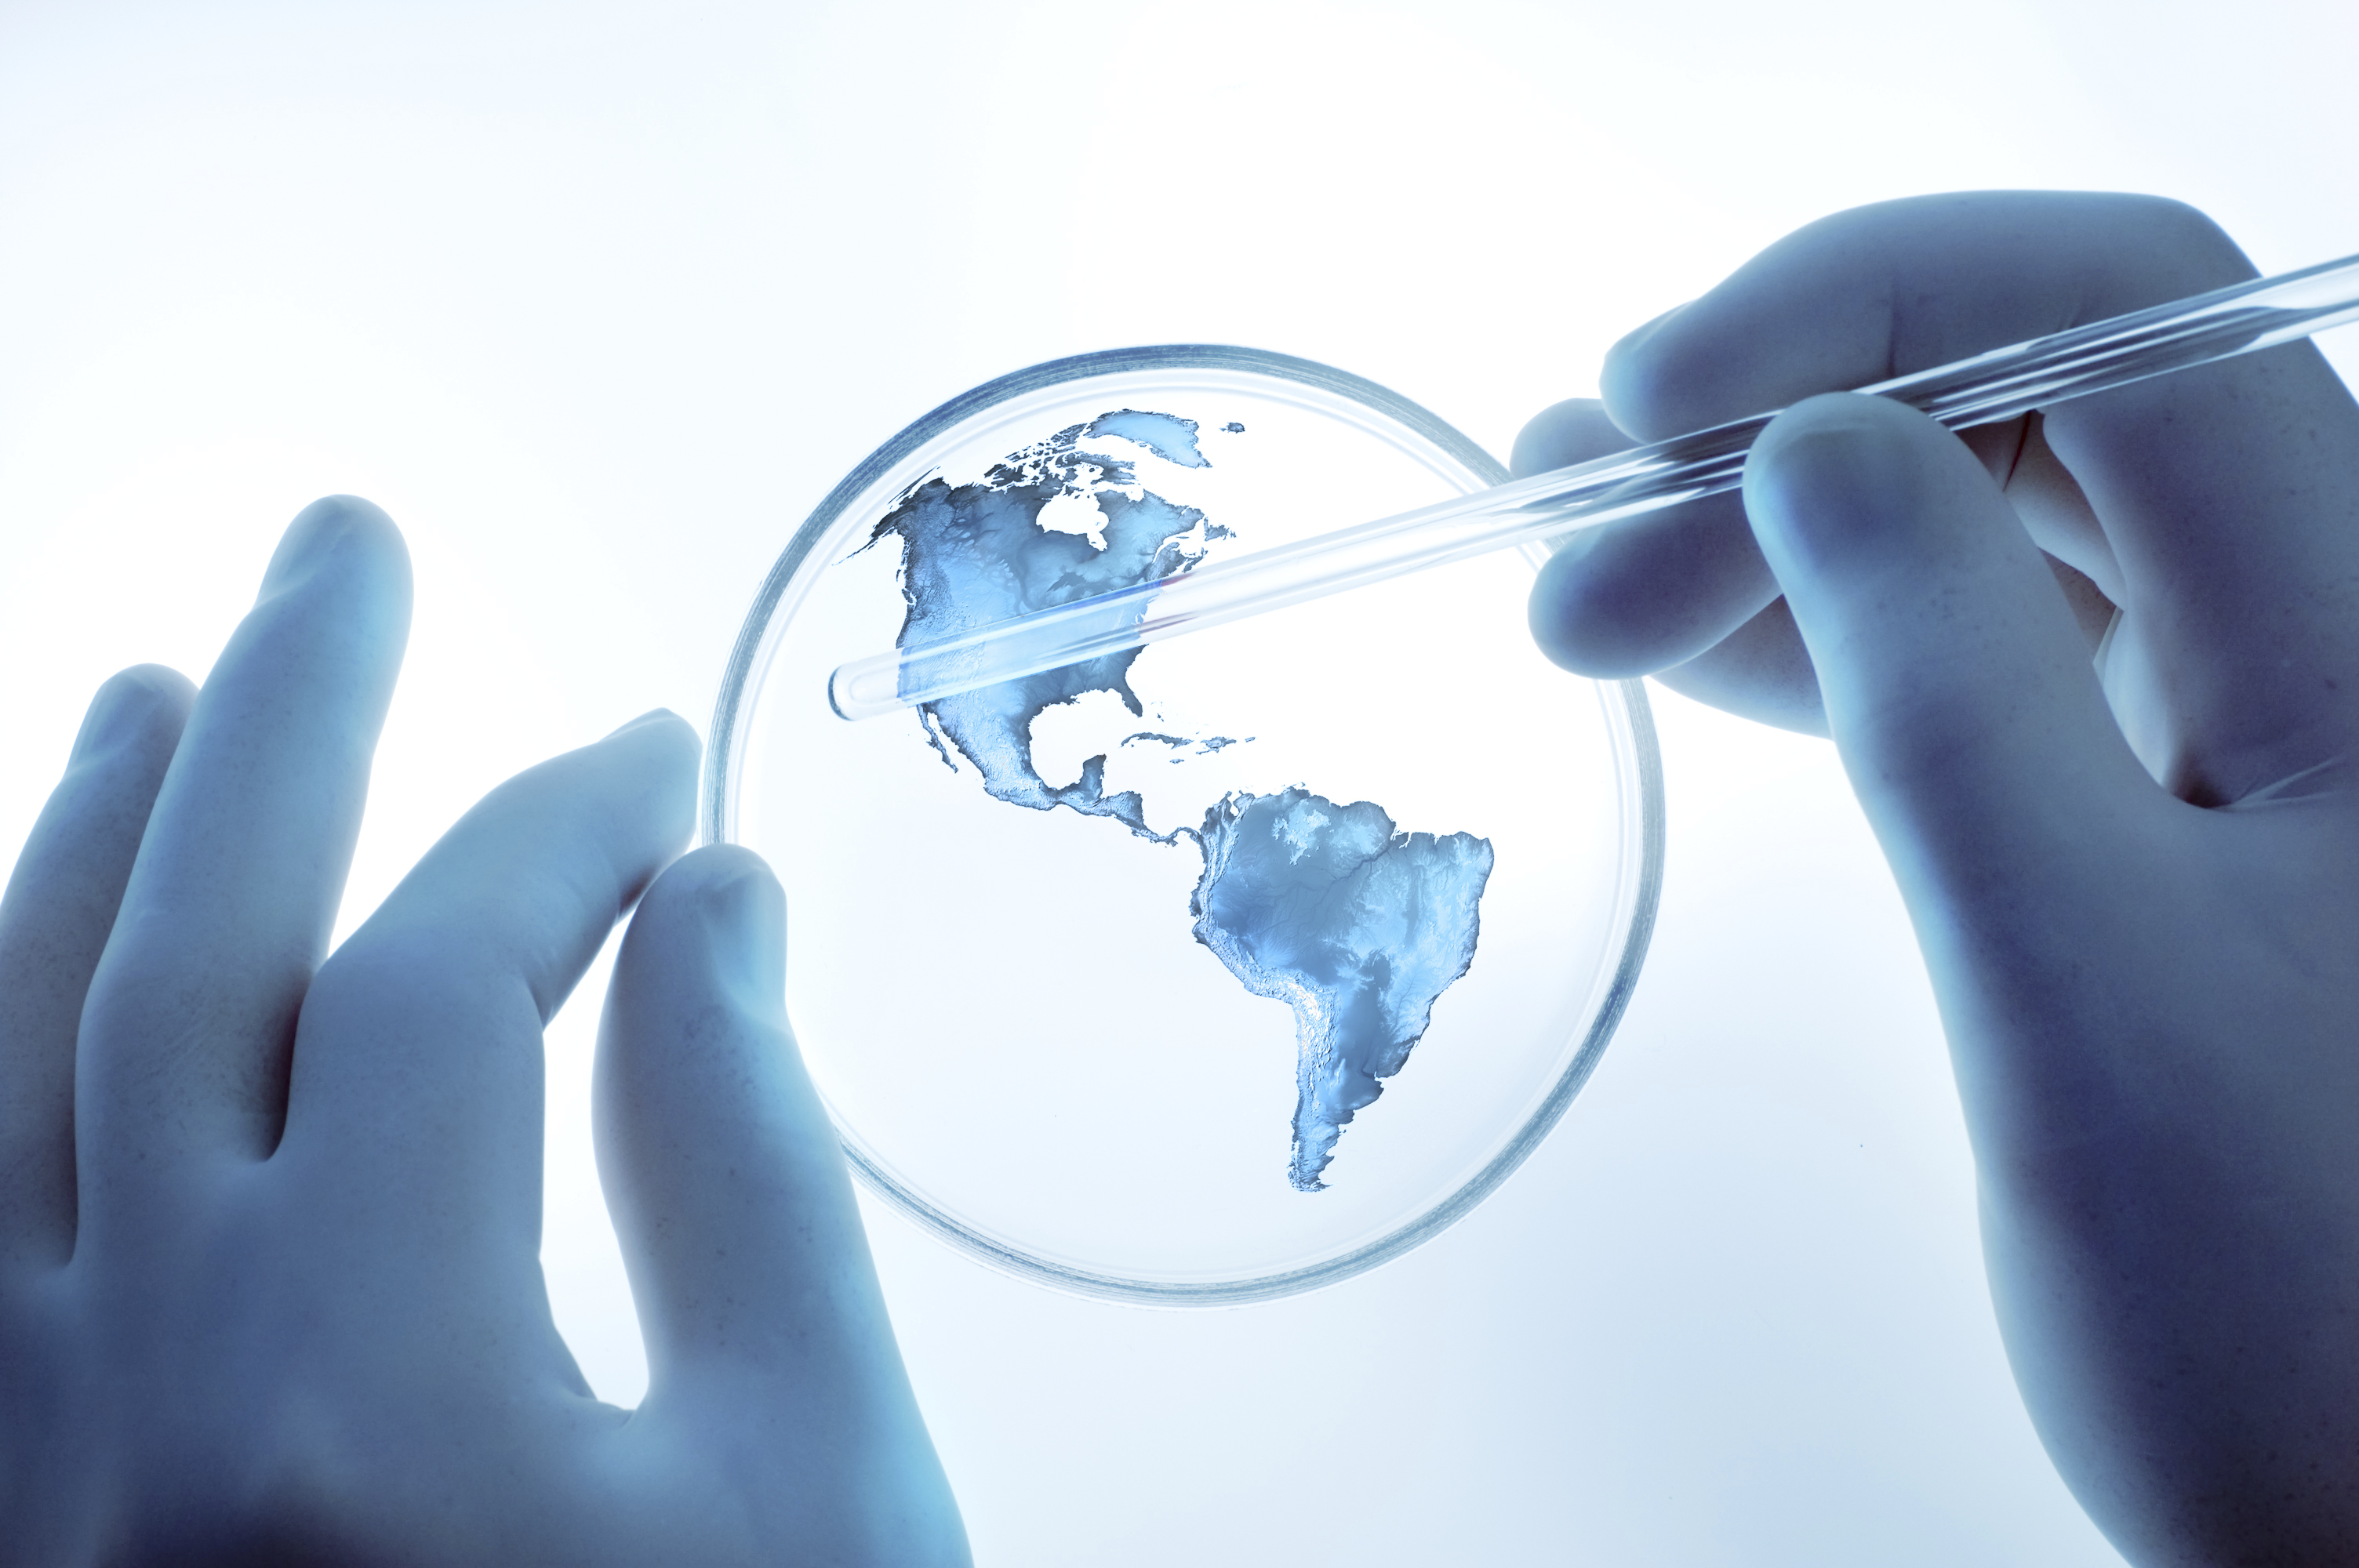 Concept photo of gloved hands examining Earth's continents in a petri dish. (stock image)